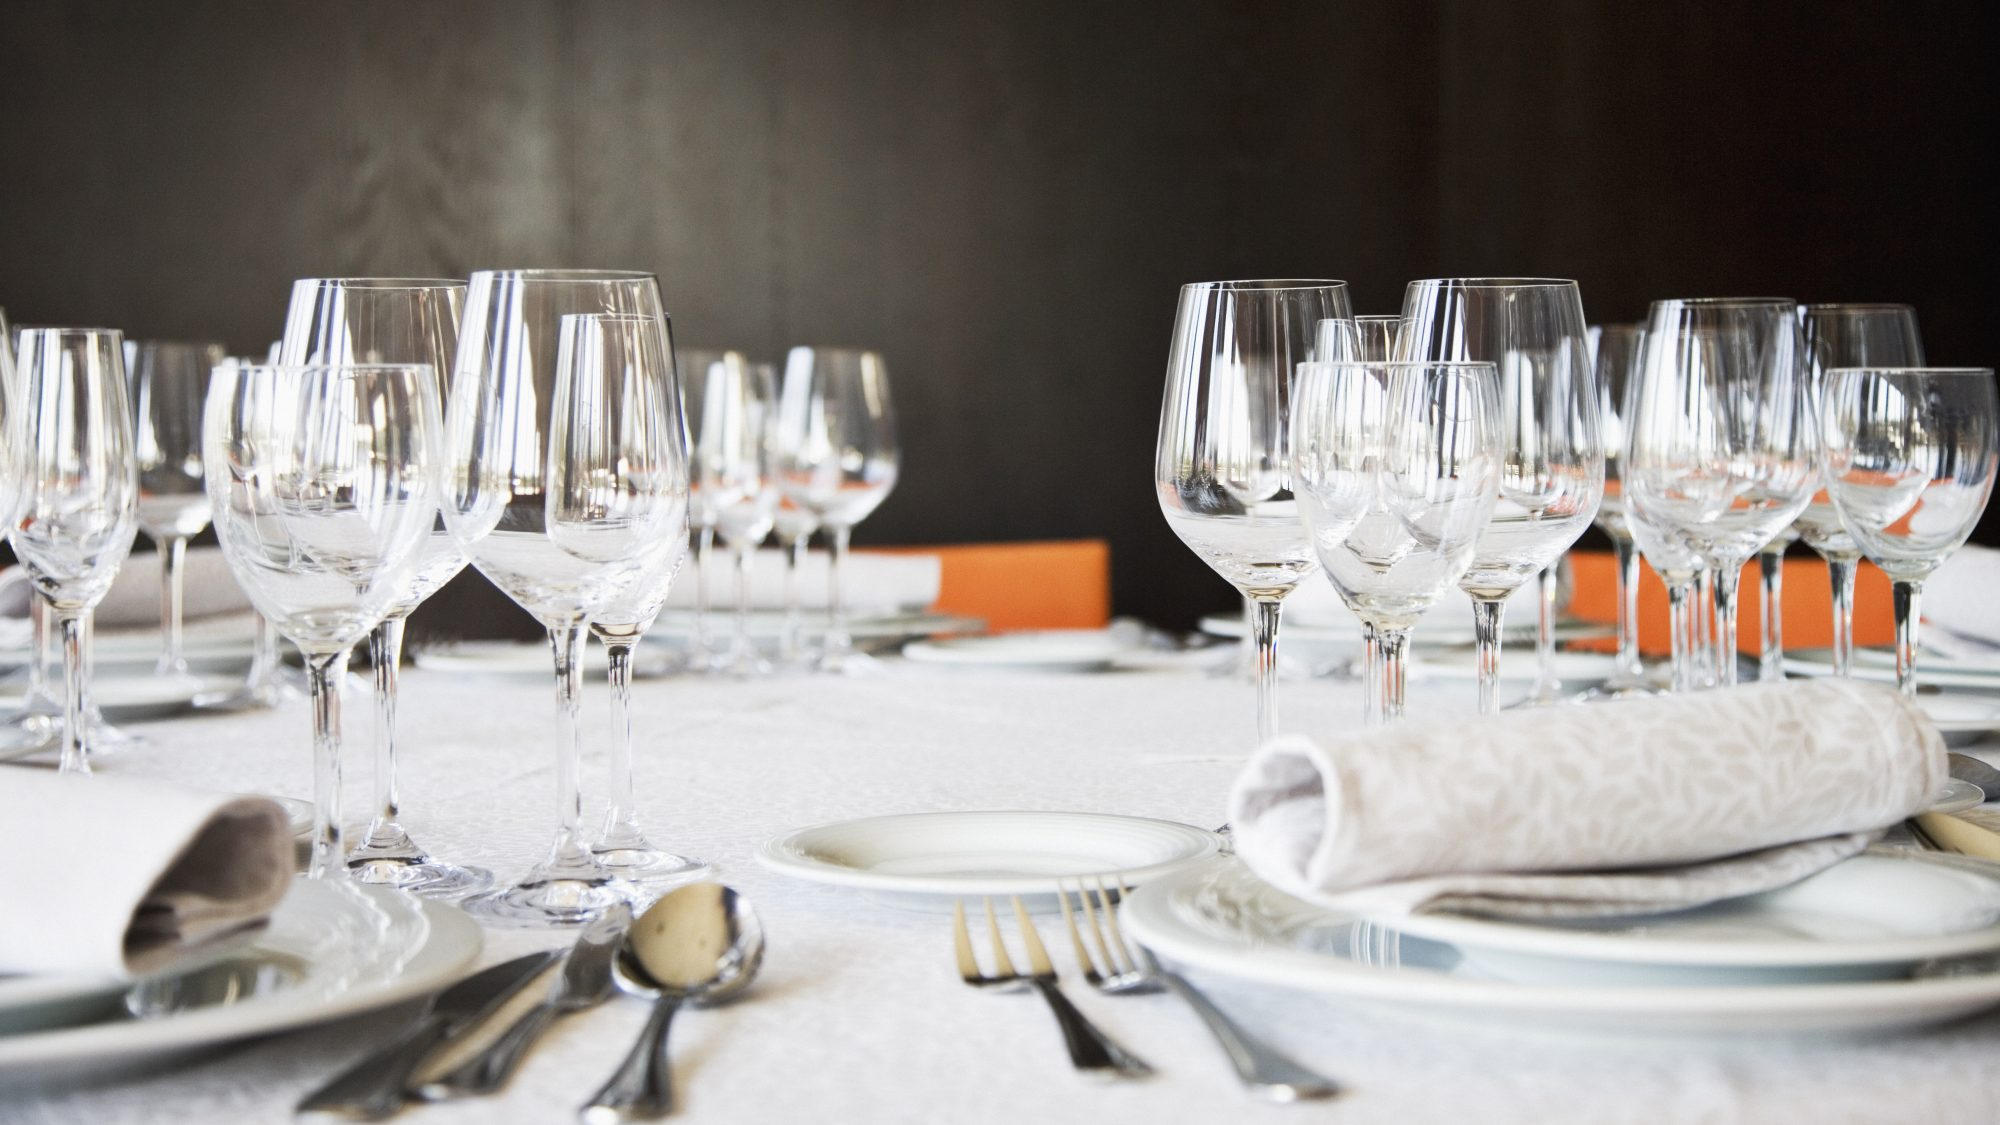 fancy-restaurant-table-setting-BLOG0917.jpg